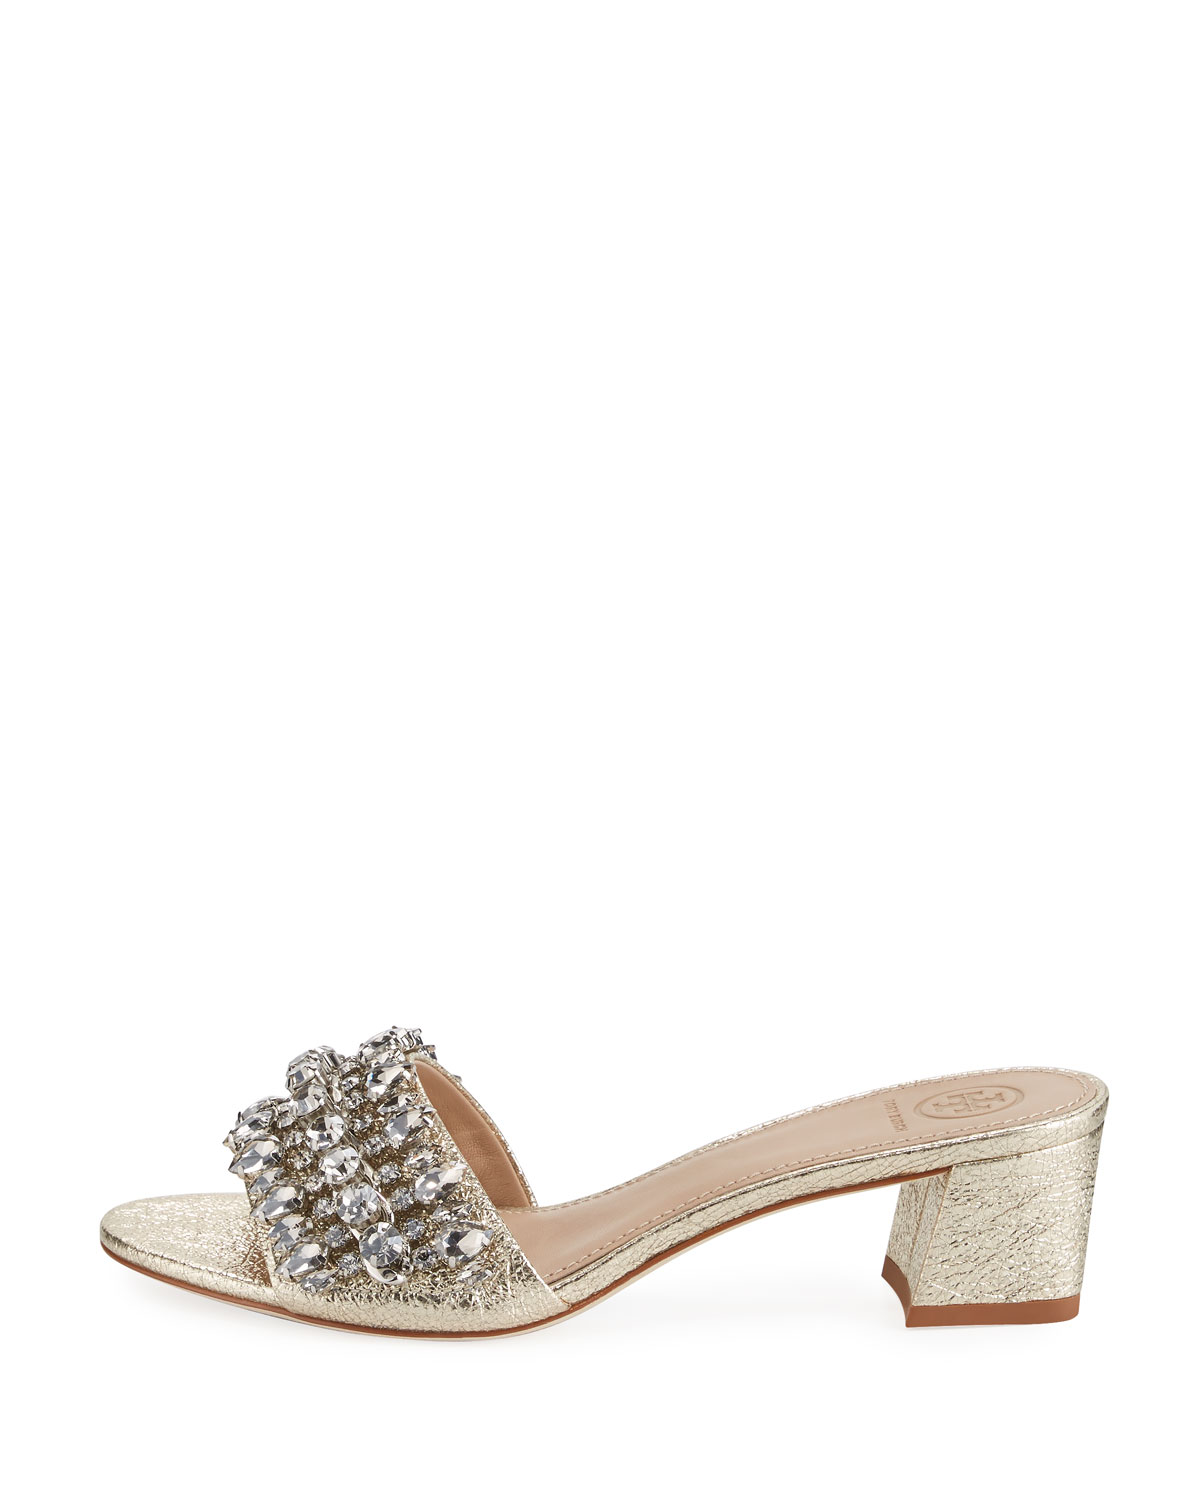 Tory Burch Beverly Metallic Embellished Slide Sandal qyw9A